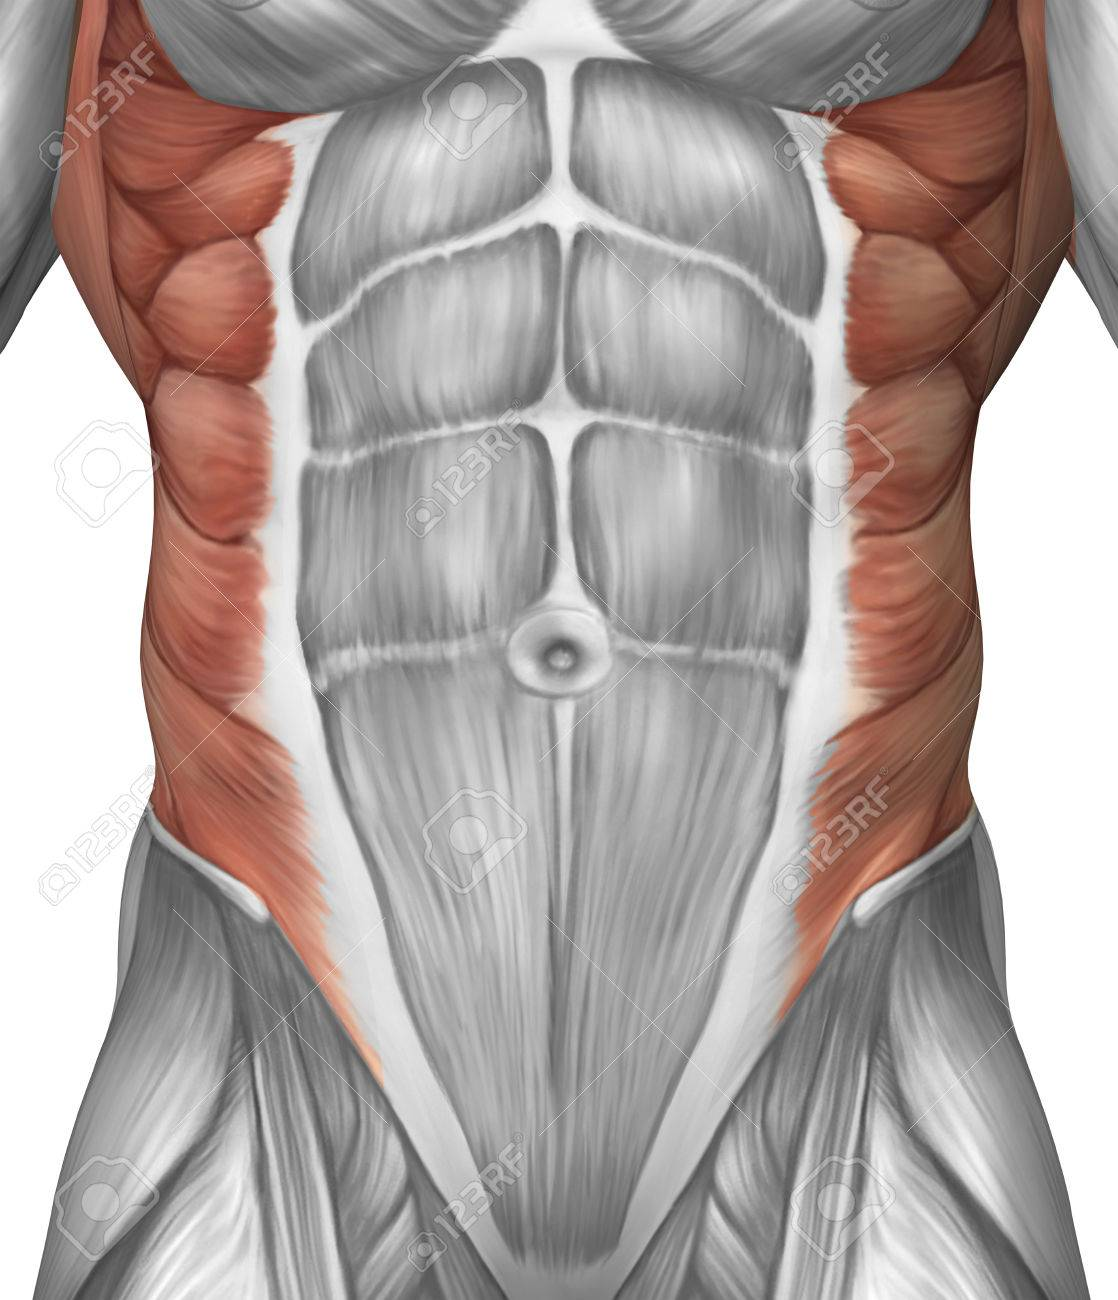 Male Muscle Anatomy Of The Abdominal Wall Stock Photo Picture And